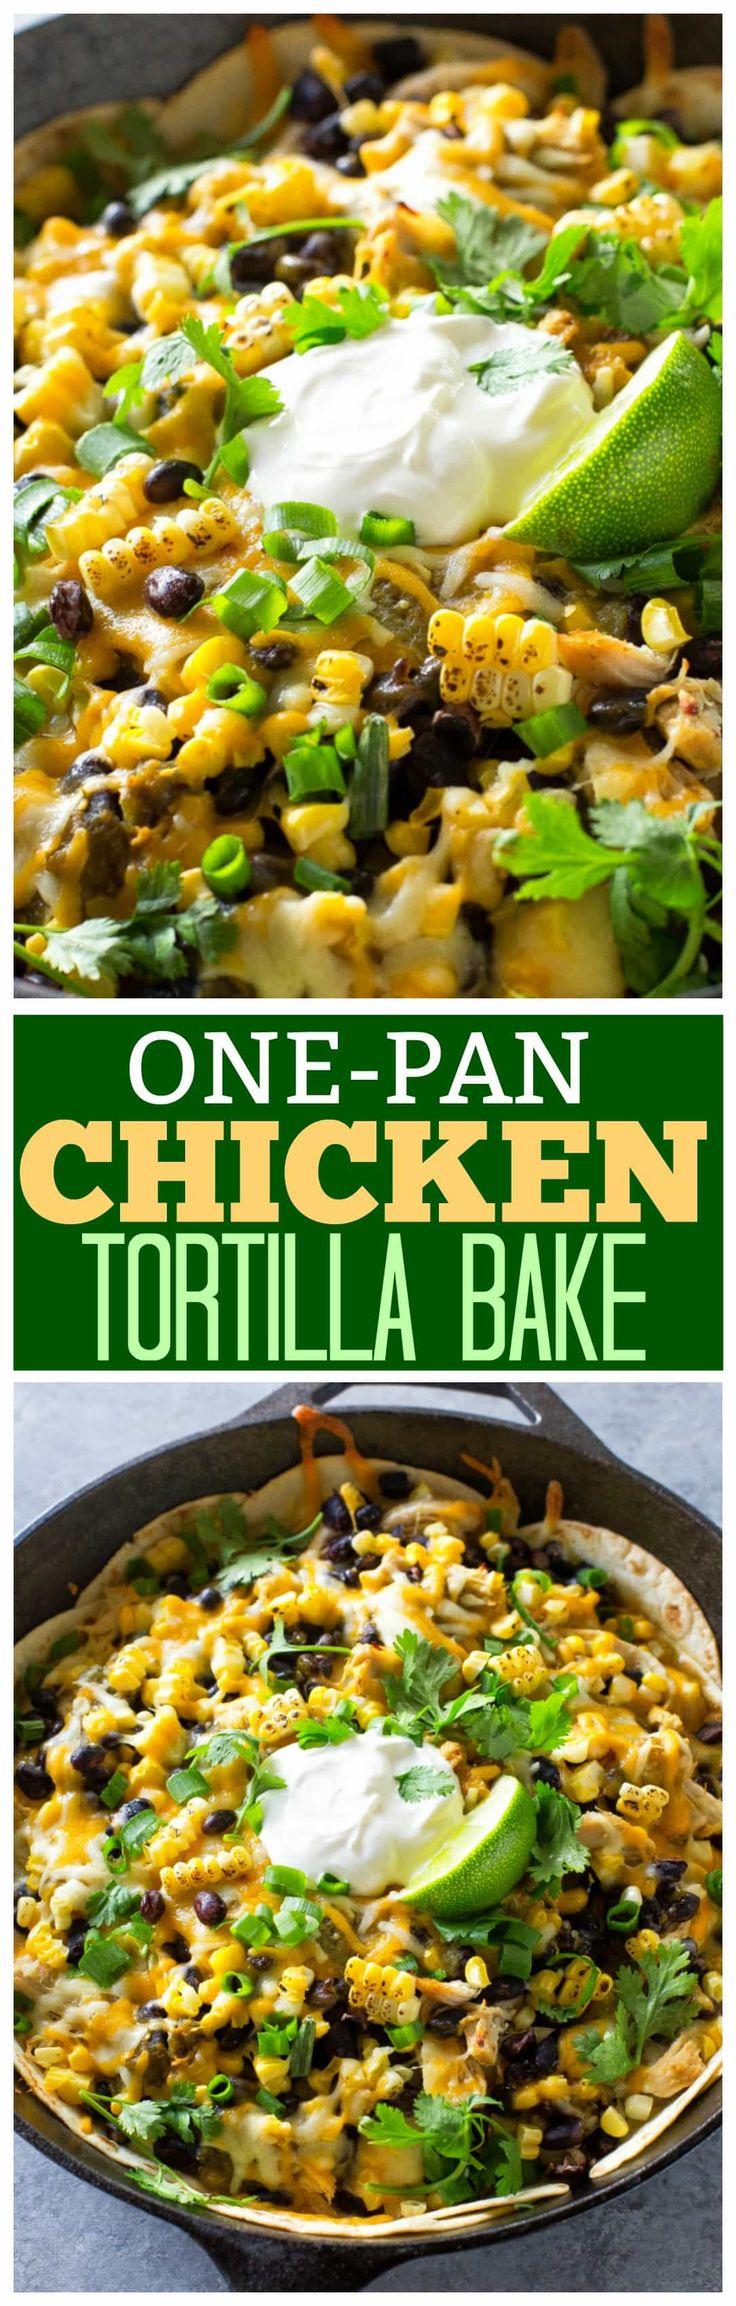 This One-Pan Chicken Tortilla Bake is a spicy Mexican dinner with only 7 ingredients. Layers of tortilla, chicken, black beans, and corn with lots of cheese in between.  the-girl-who-ate-everything.com